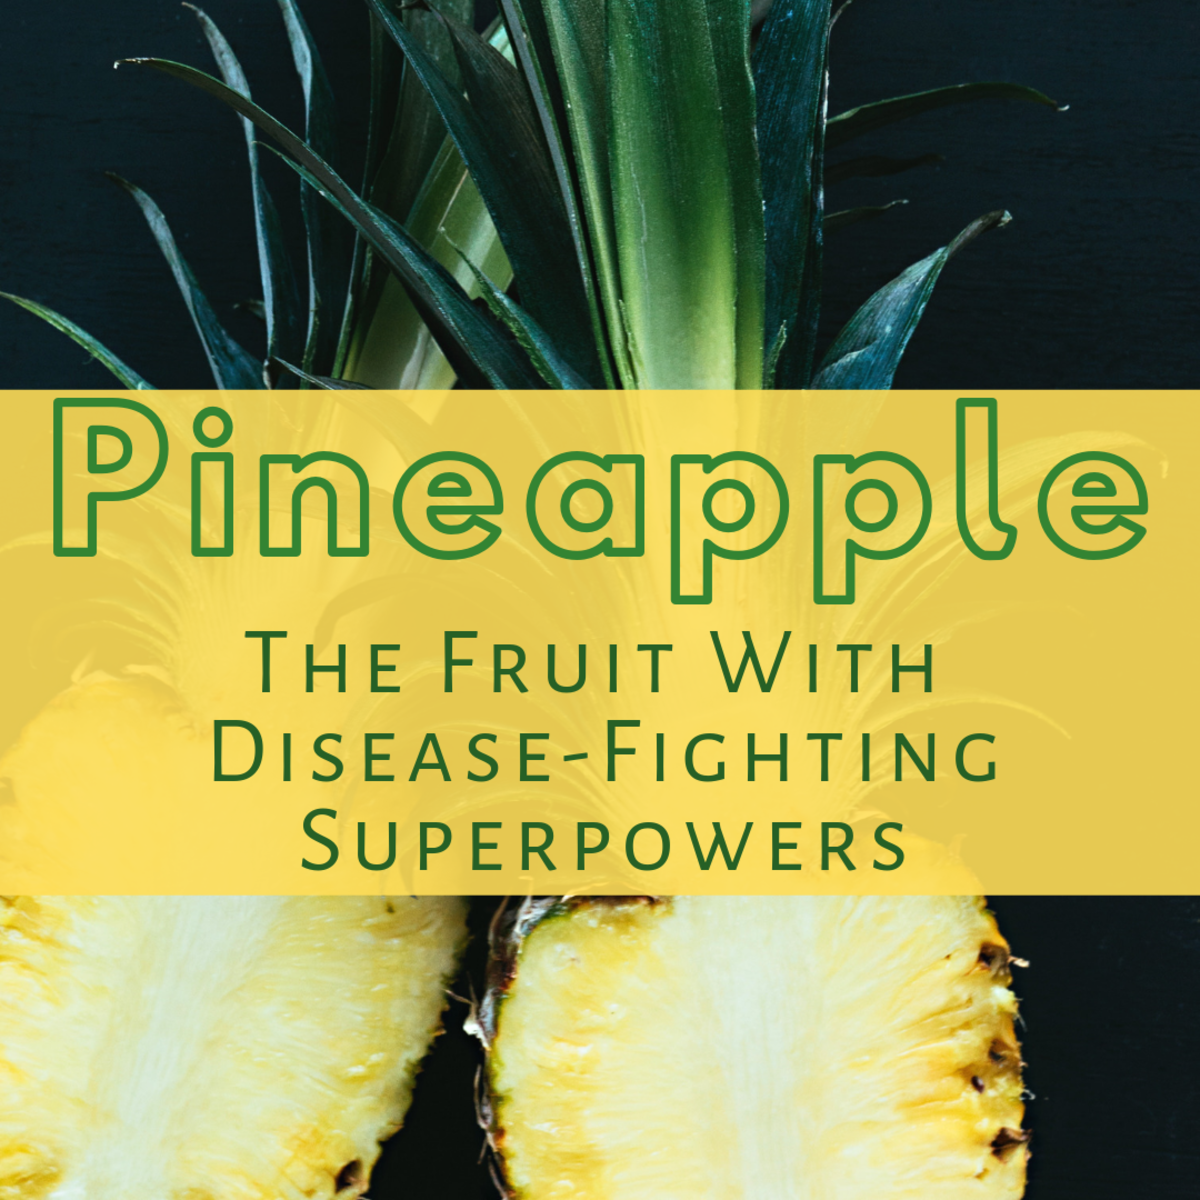 Pineapple: The Fruit With Disease-Fighting Superpowers